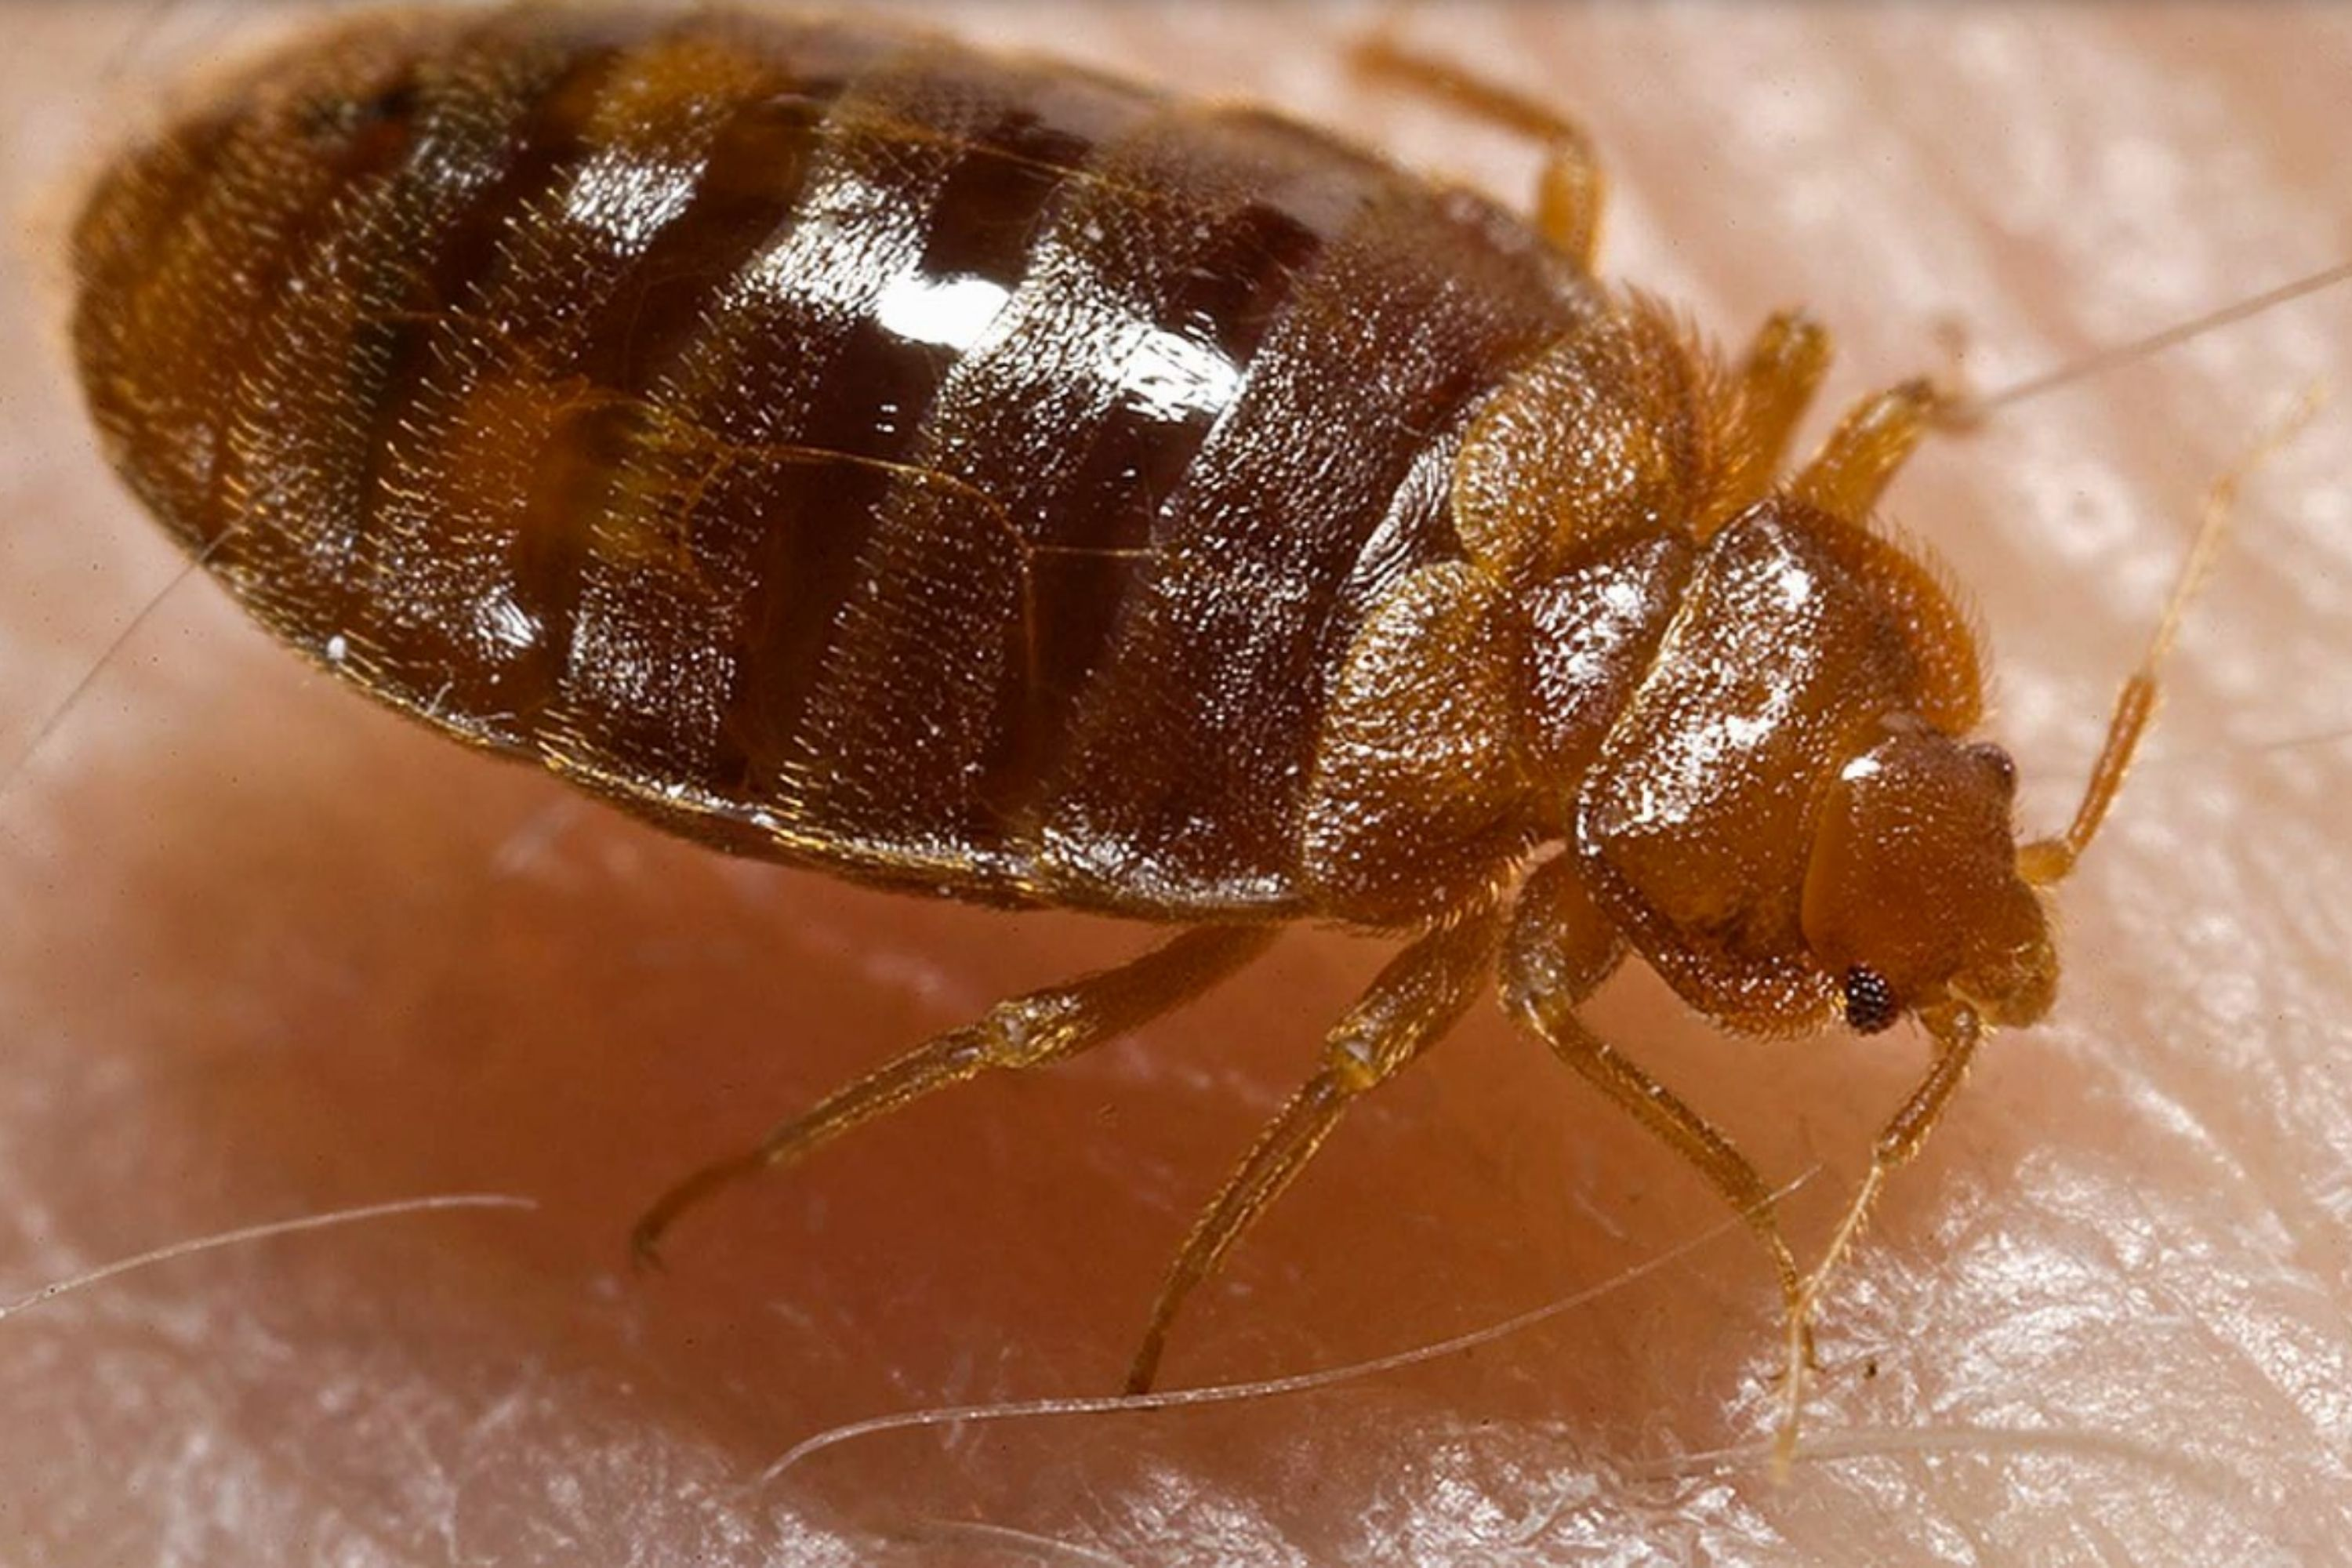 Small Black Bugs In the House bed bugs (2)